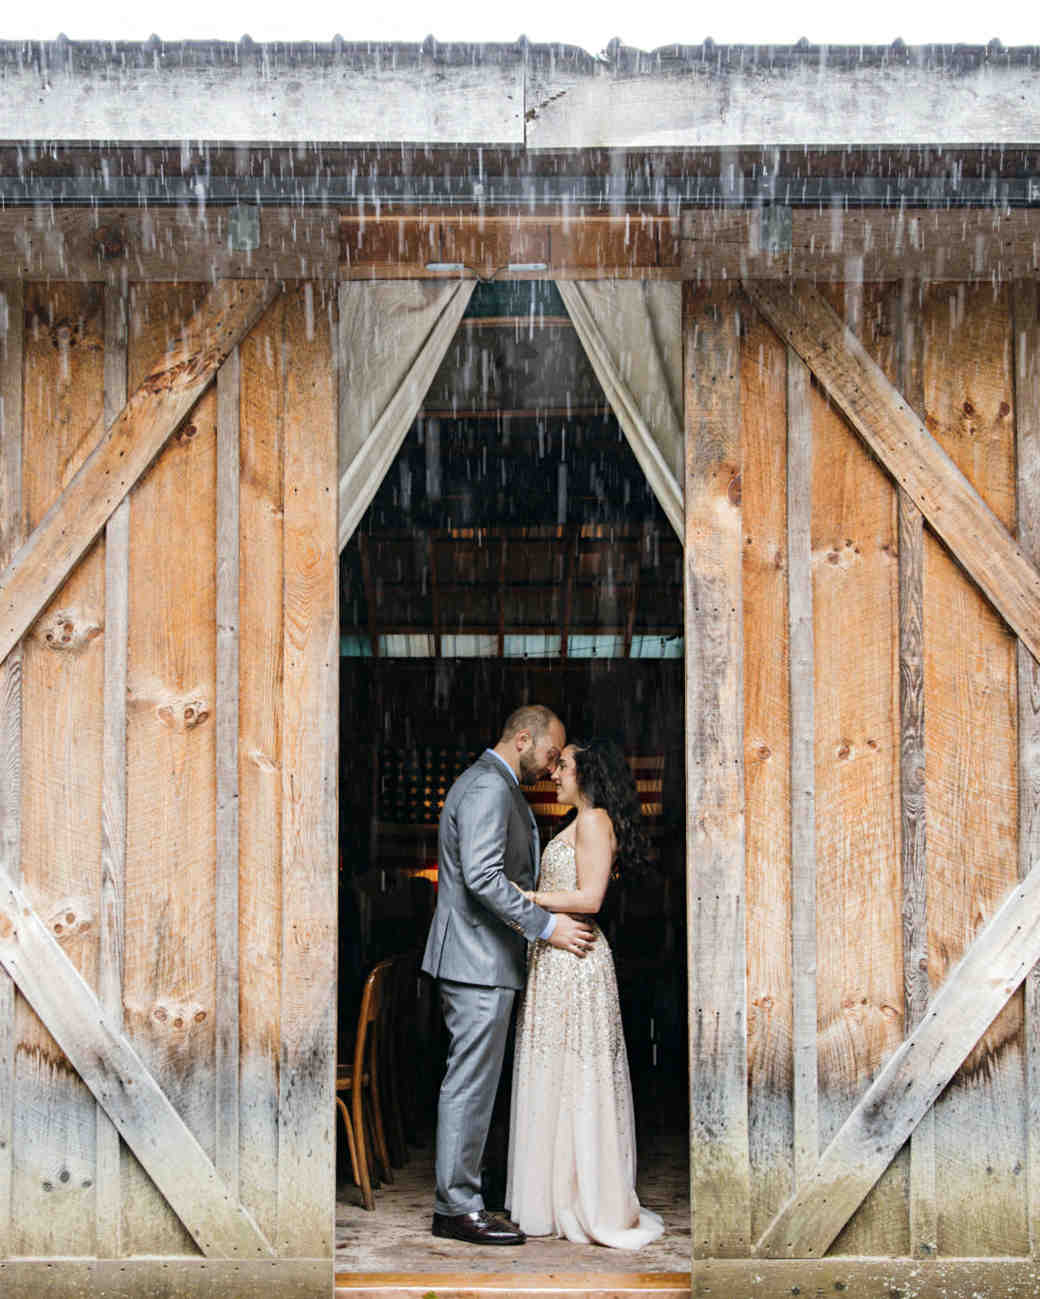 rainy wedding couple in barn